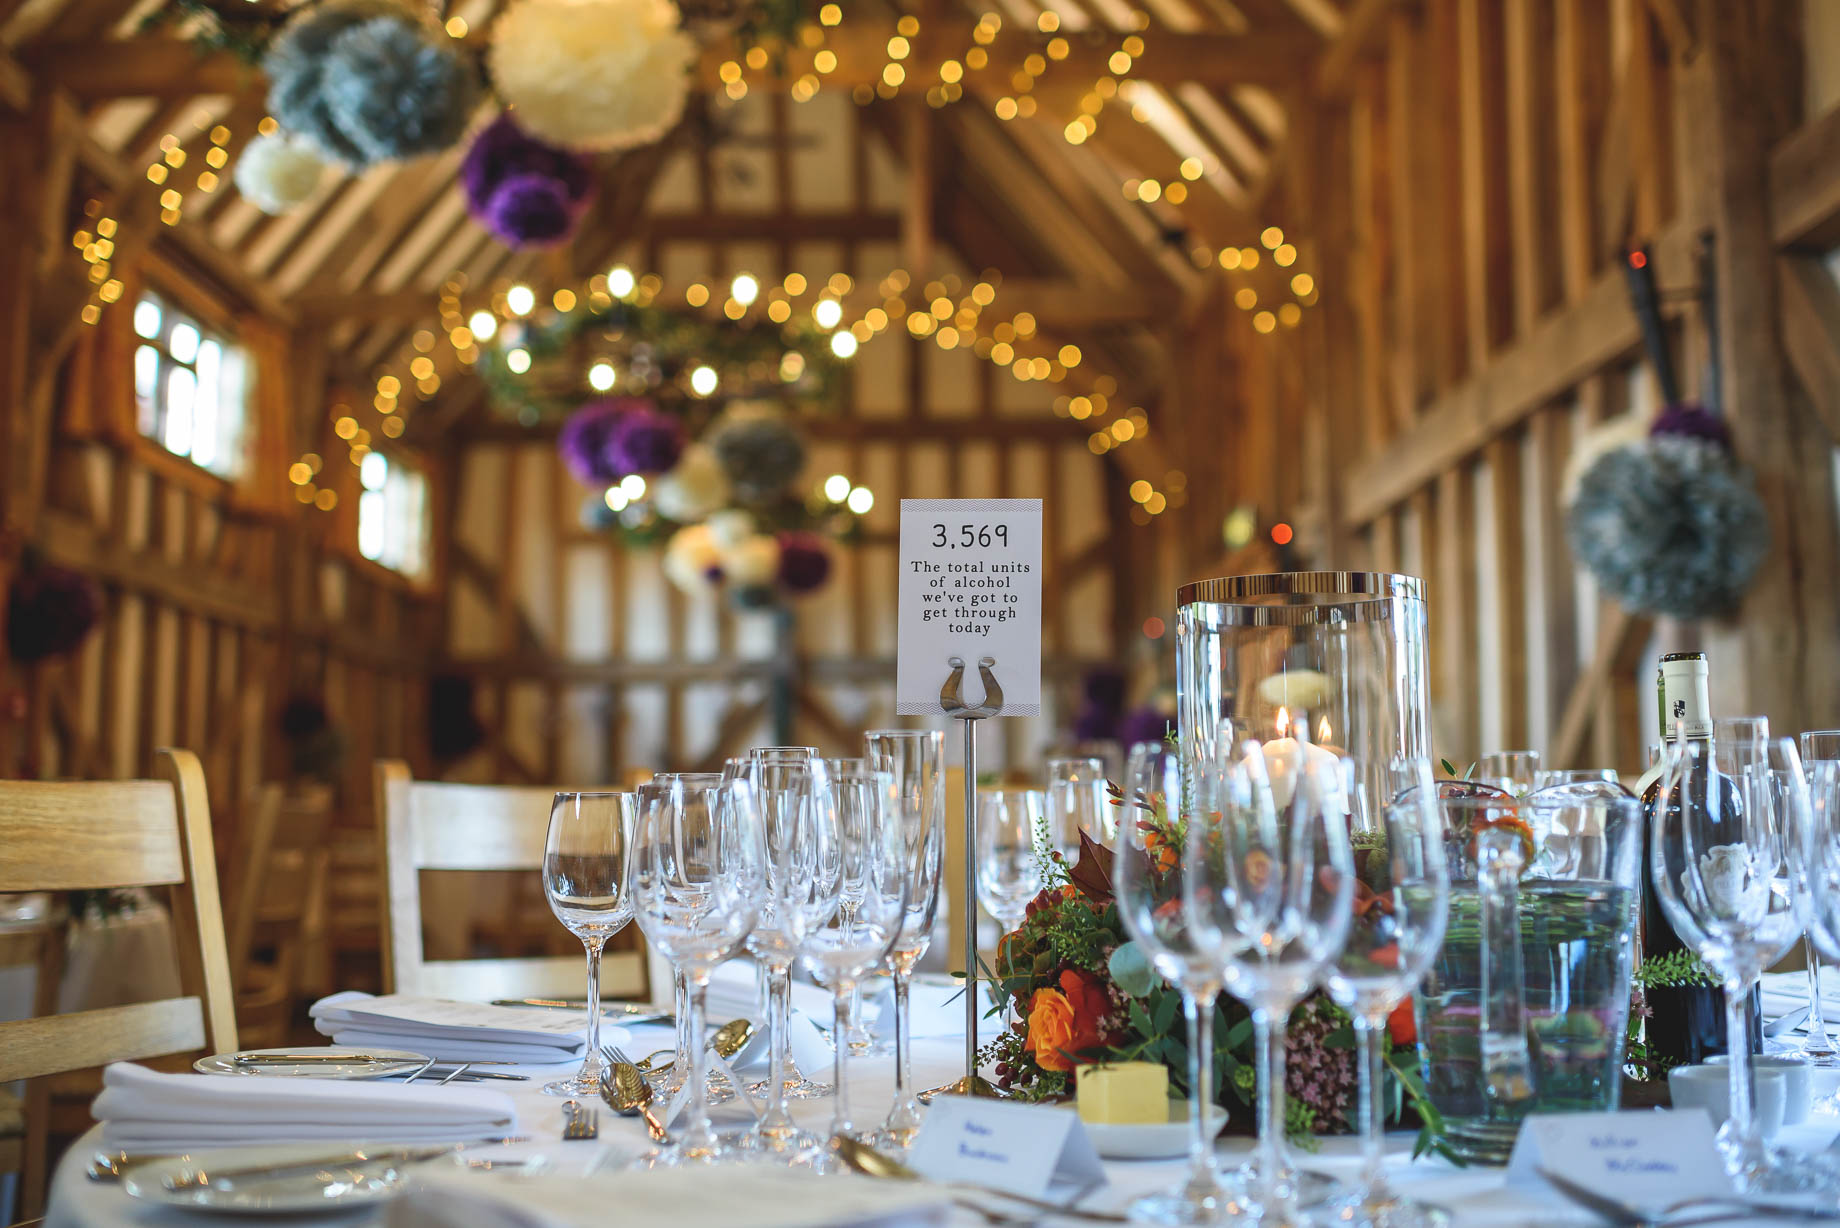 Gate Street Barn wedding photography - Guy Collier - Claire and Andy (118 of 192)